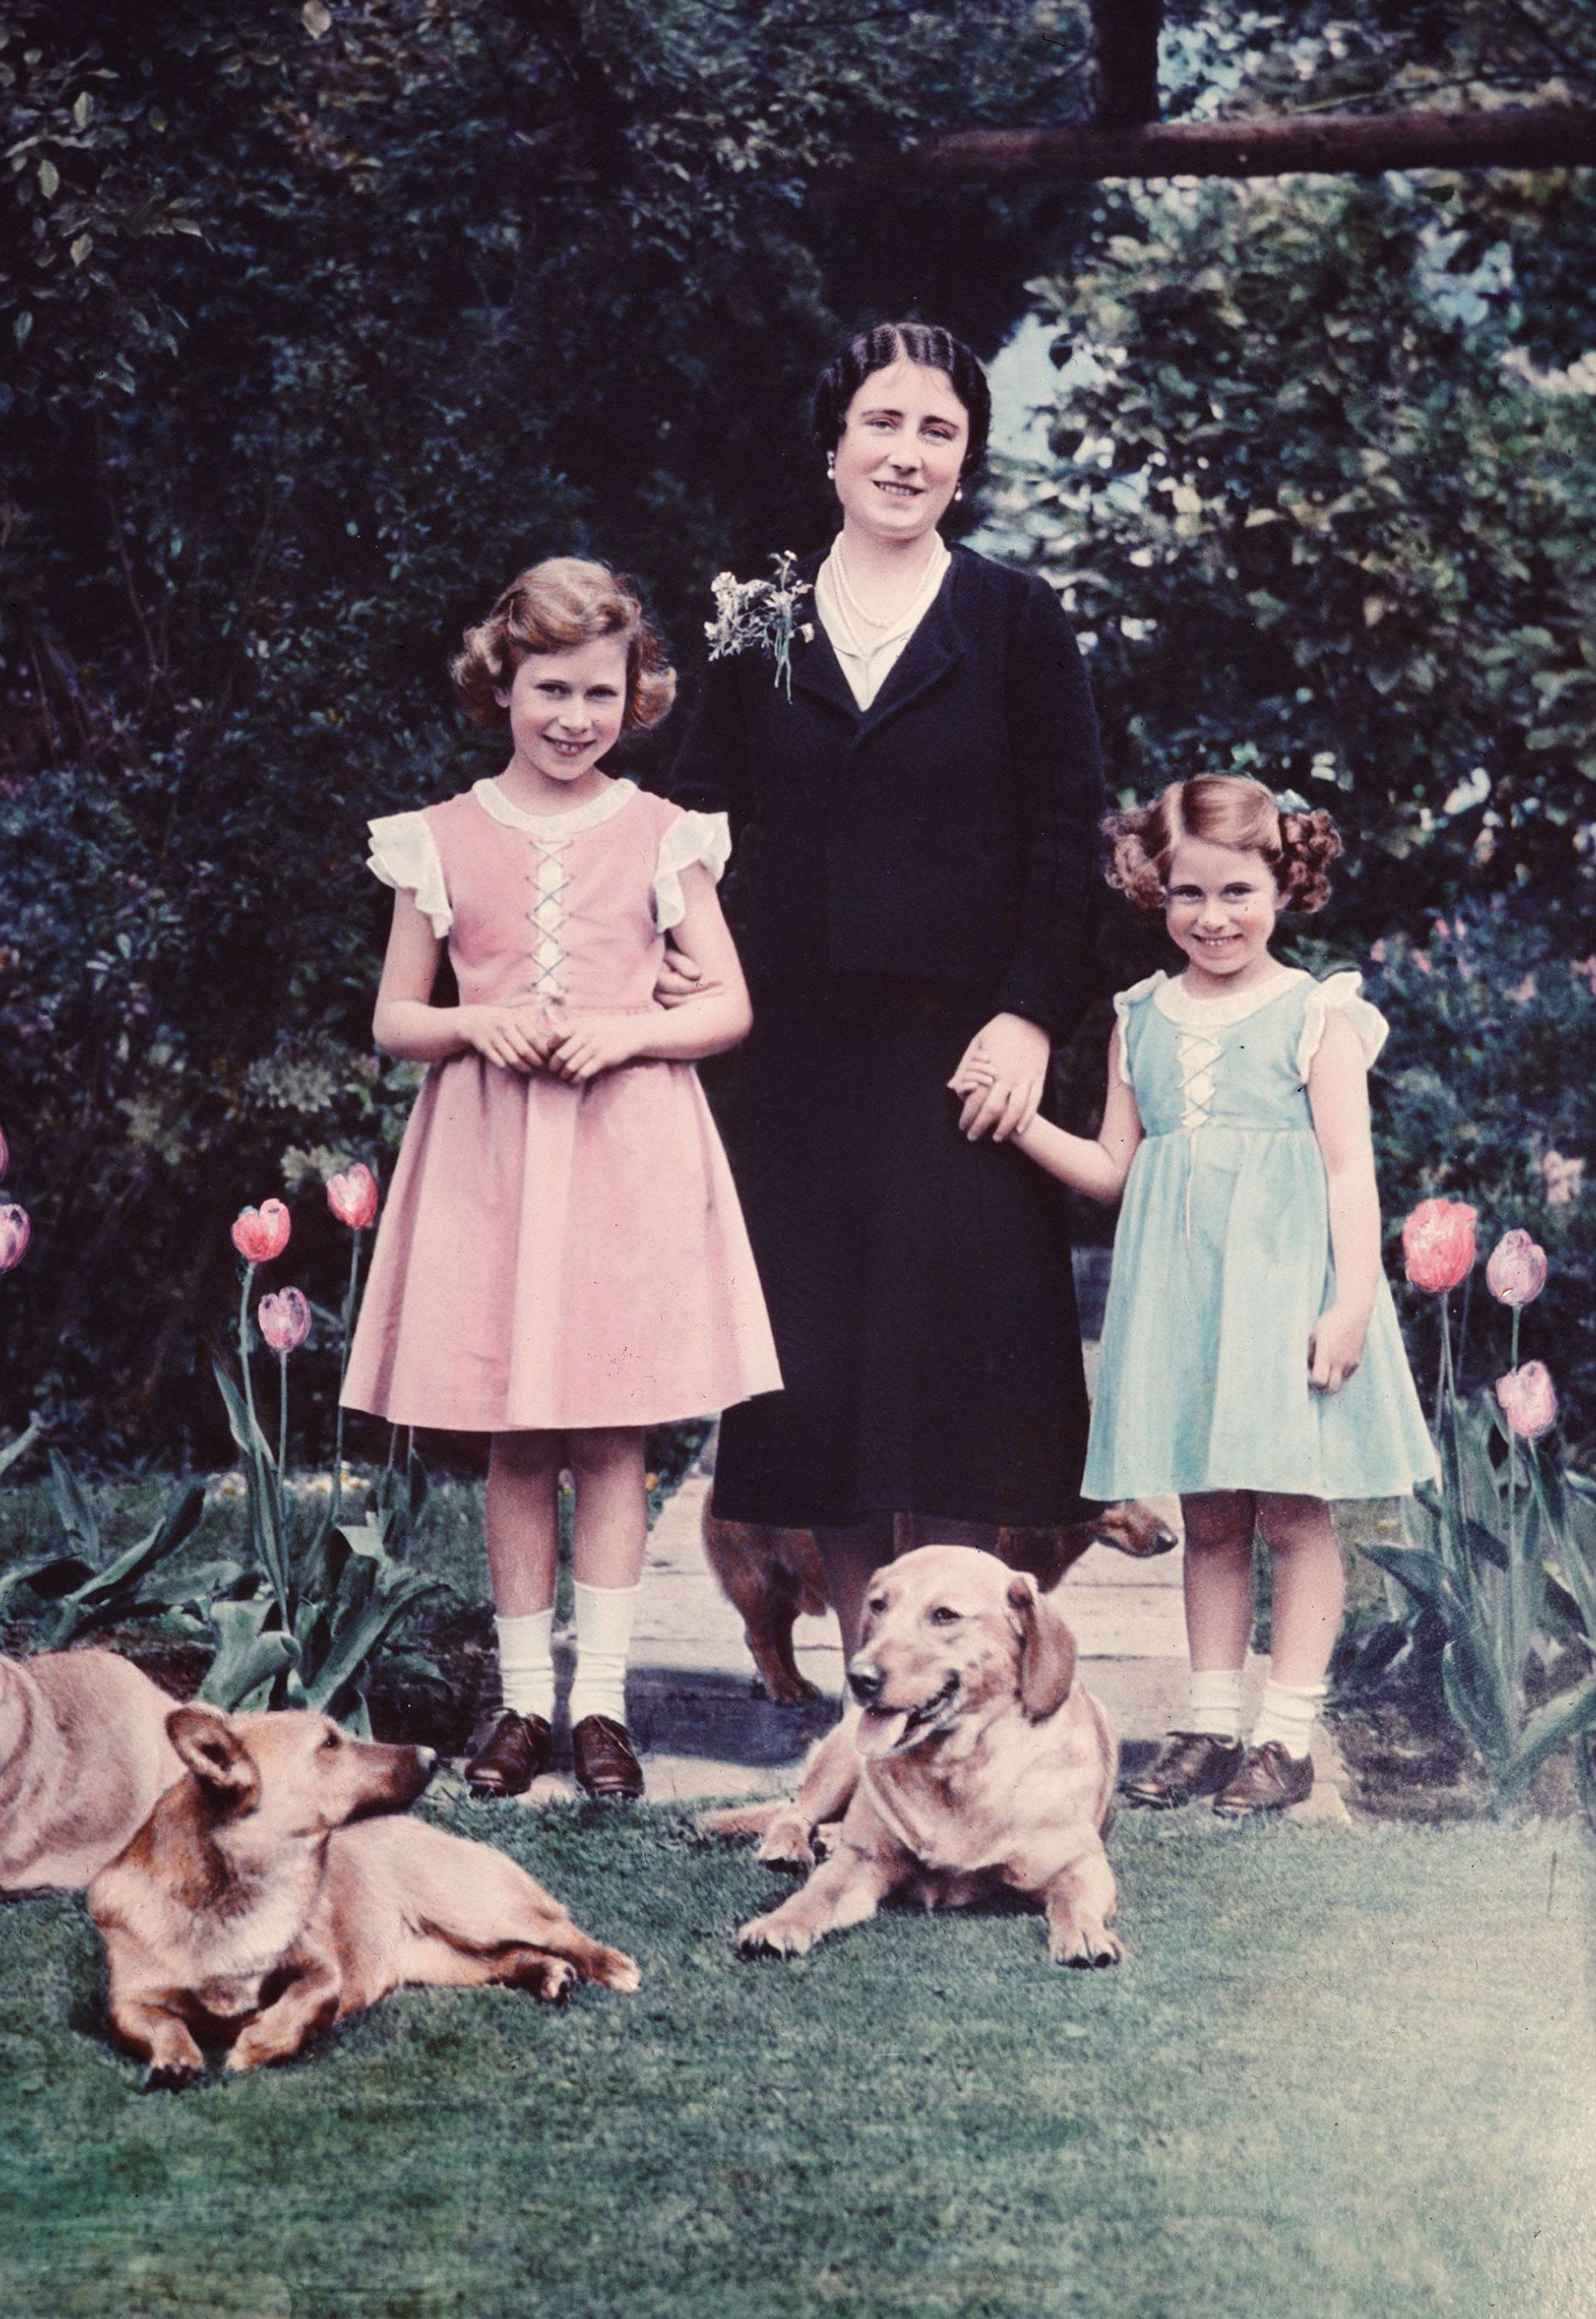 Britain's Queen Elizabeth, center, poses with her two daughters, Princess Elizabeth, left, and Princess Margaret, in June 1936 in the garden of the Royal Lodge at Windsor, England.